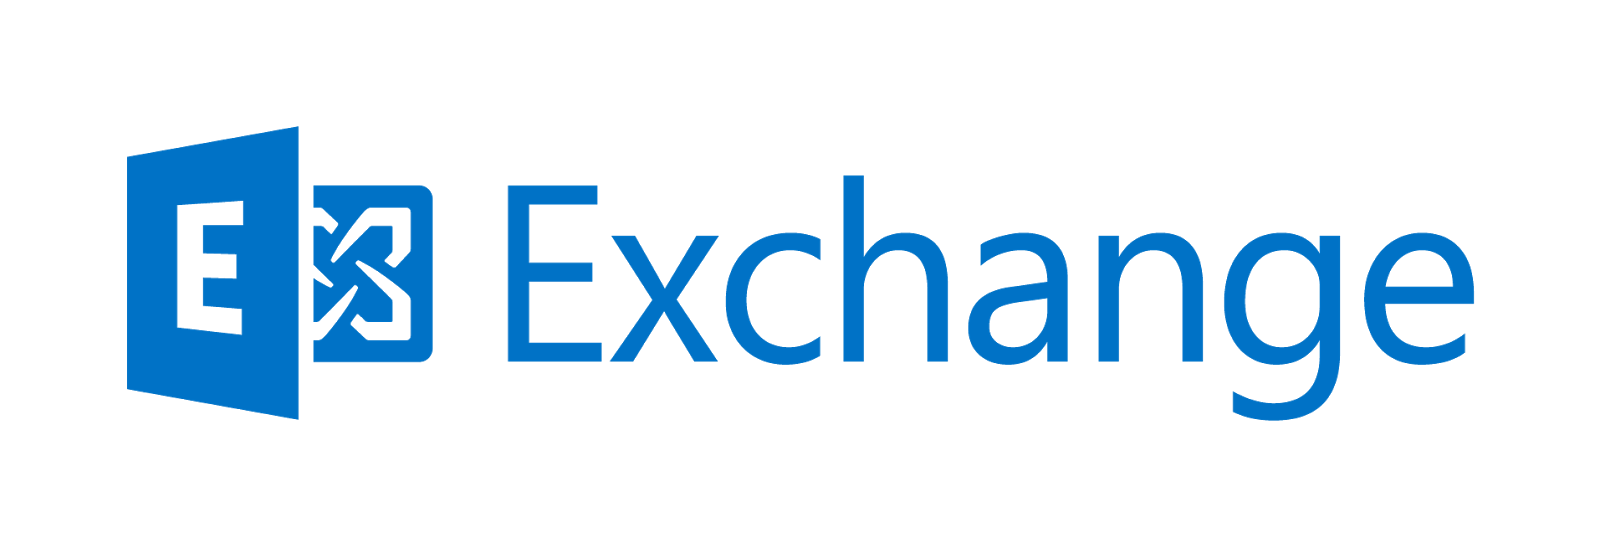 Exchange Anywhere: Exchange Help : Network ports for clients